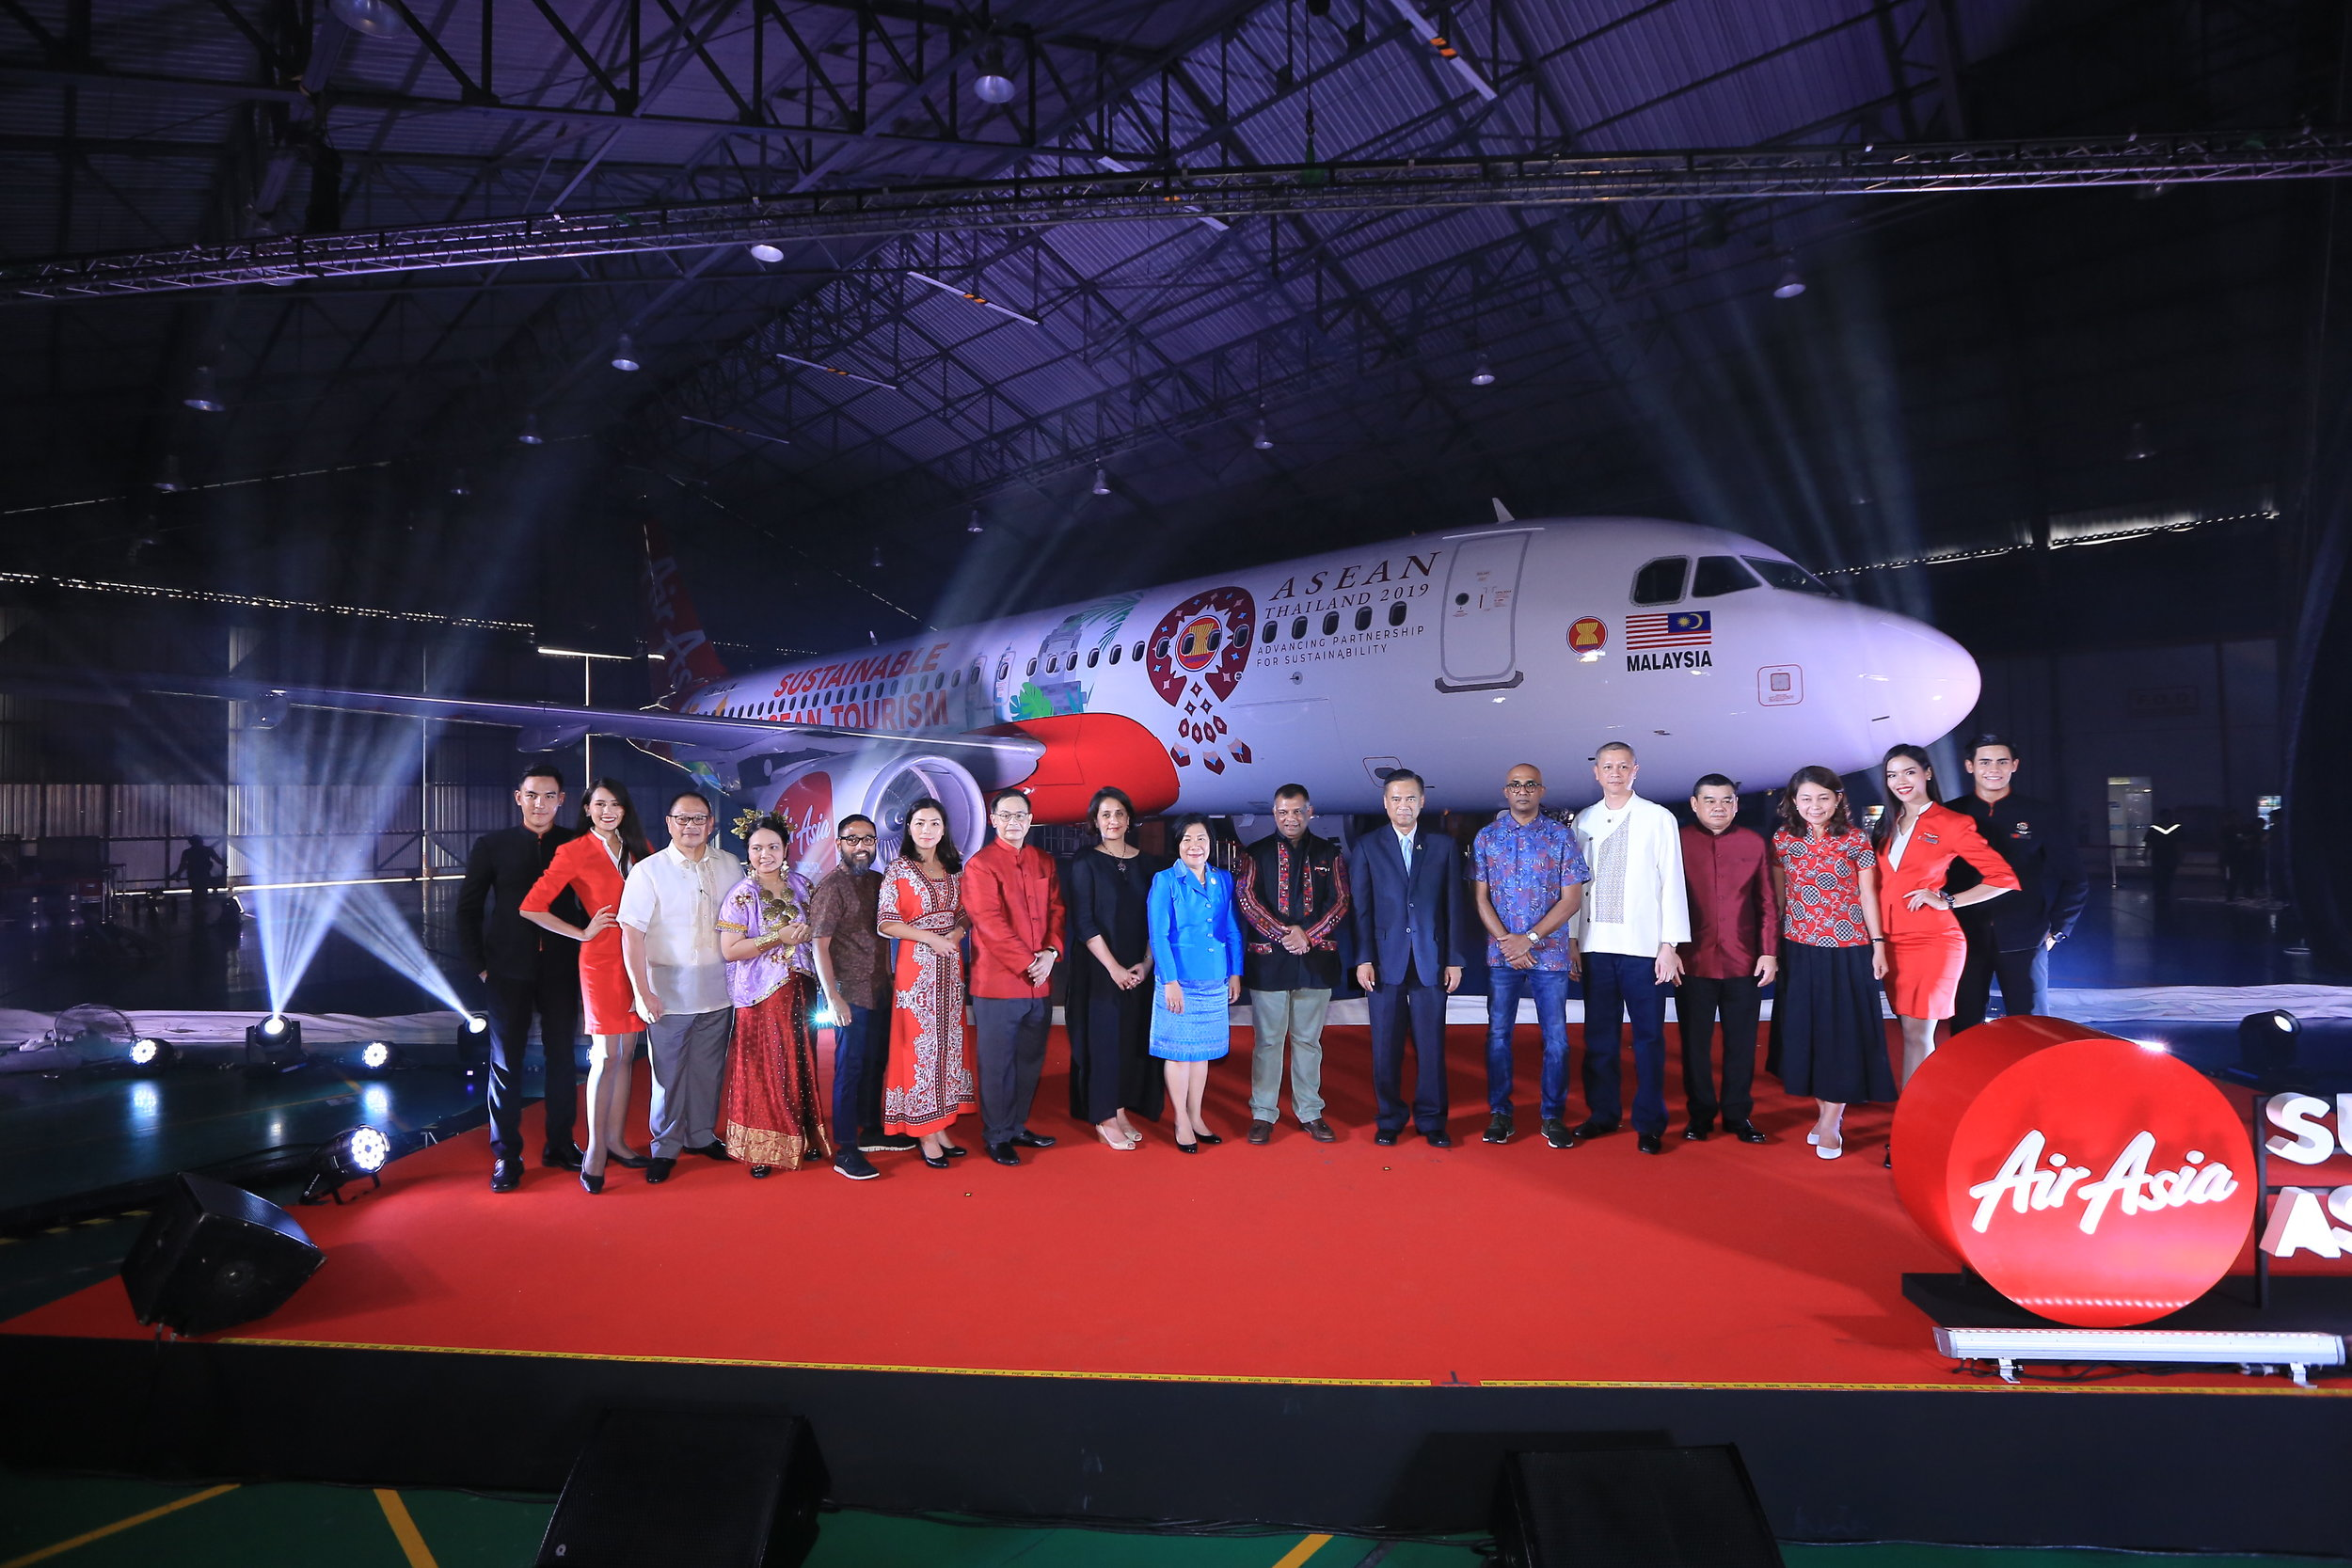 Photo Caption: (Ninth from left) Director-General of the Department of Information and Spokesperson of the Ministry of Foreign Affairs Thailand Ms. Busadee Santipitaks, AirAsia Group CEO Tony Fernandes and Advisor to the Ministry of Foreign Affairs Thailand Mr. Vijavat Isarabhakdi with the rest of AirAsia's management team flanked by AirAsia Cabin Crew at the launch of AirAsia Asean Livery in Bangkok, Thailand.